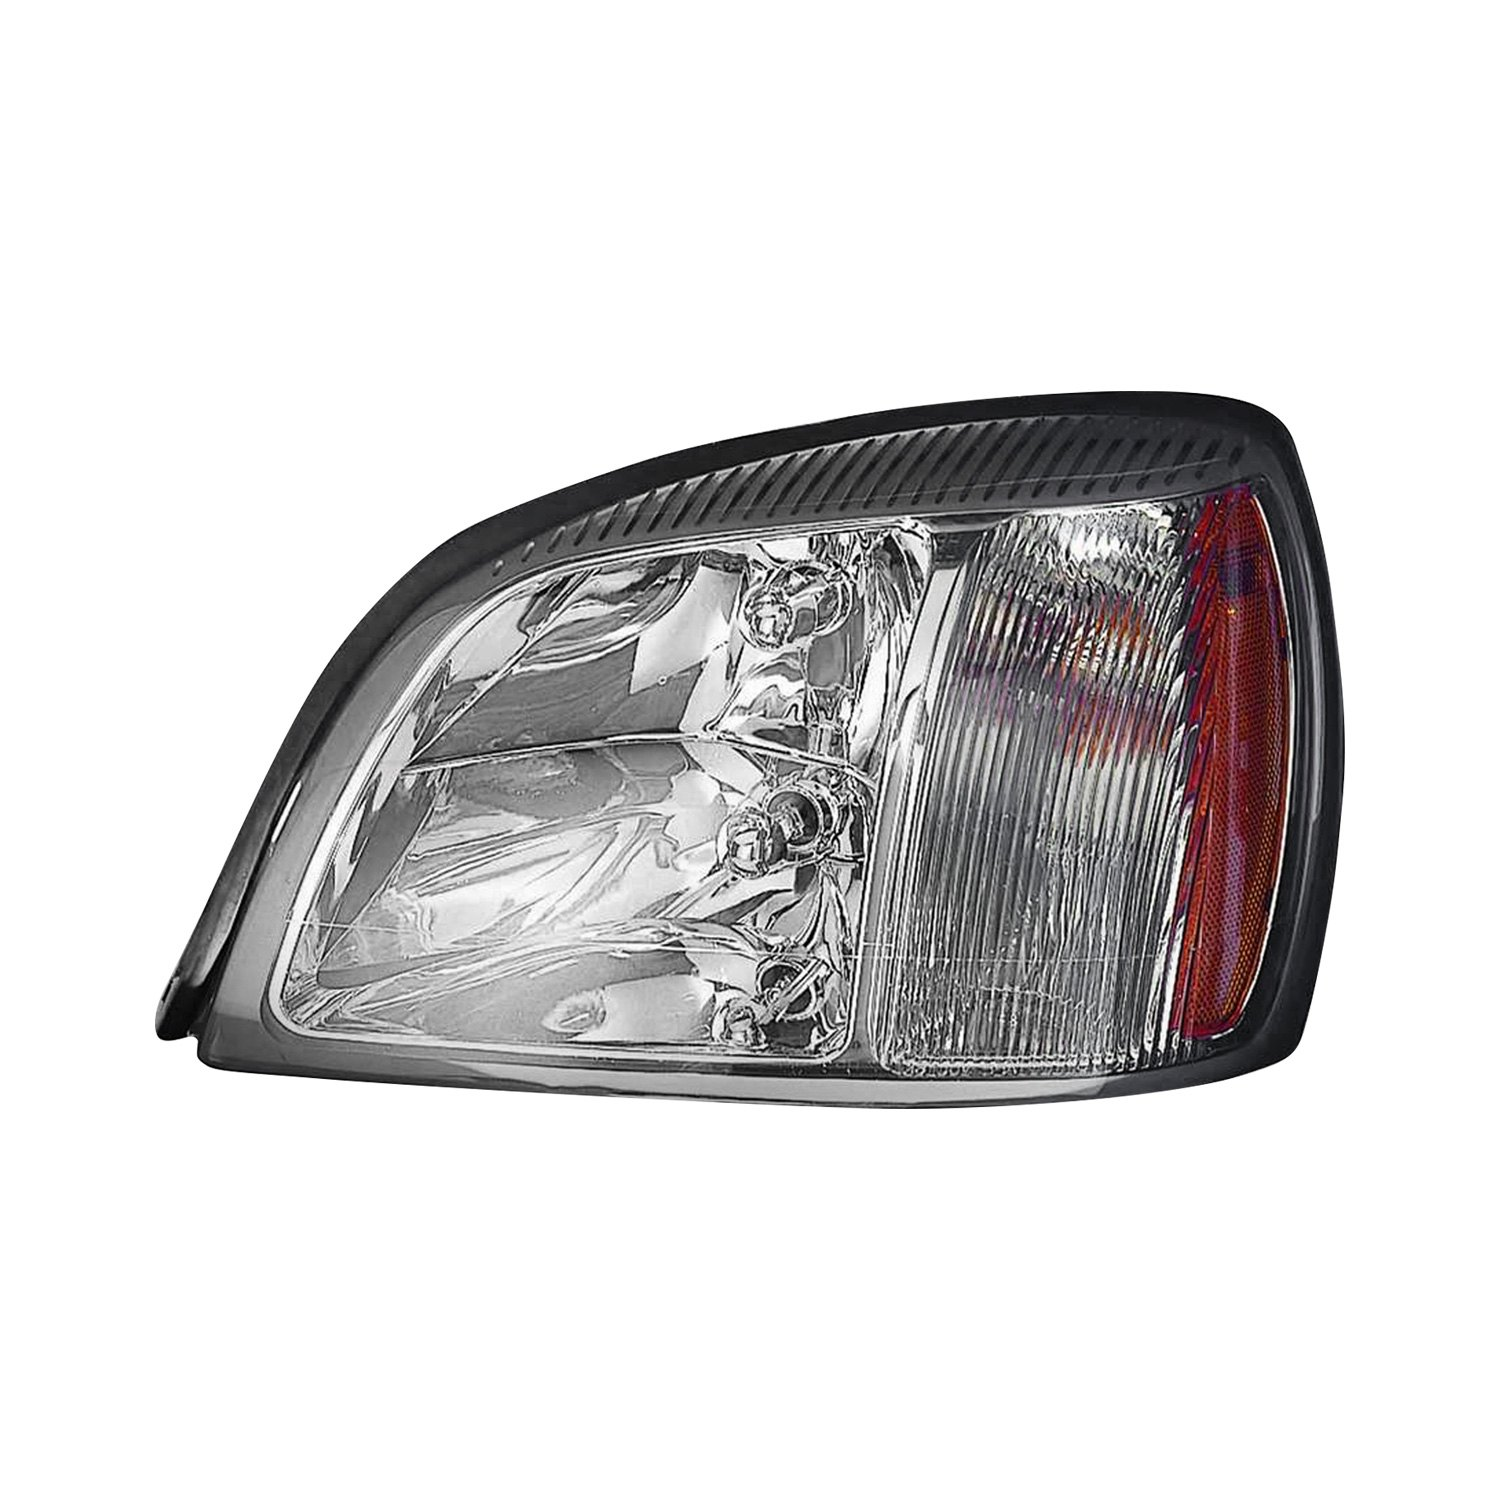 Cadillac Deville 2003 Replacement Headlight